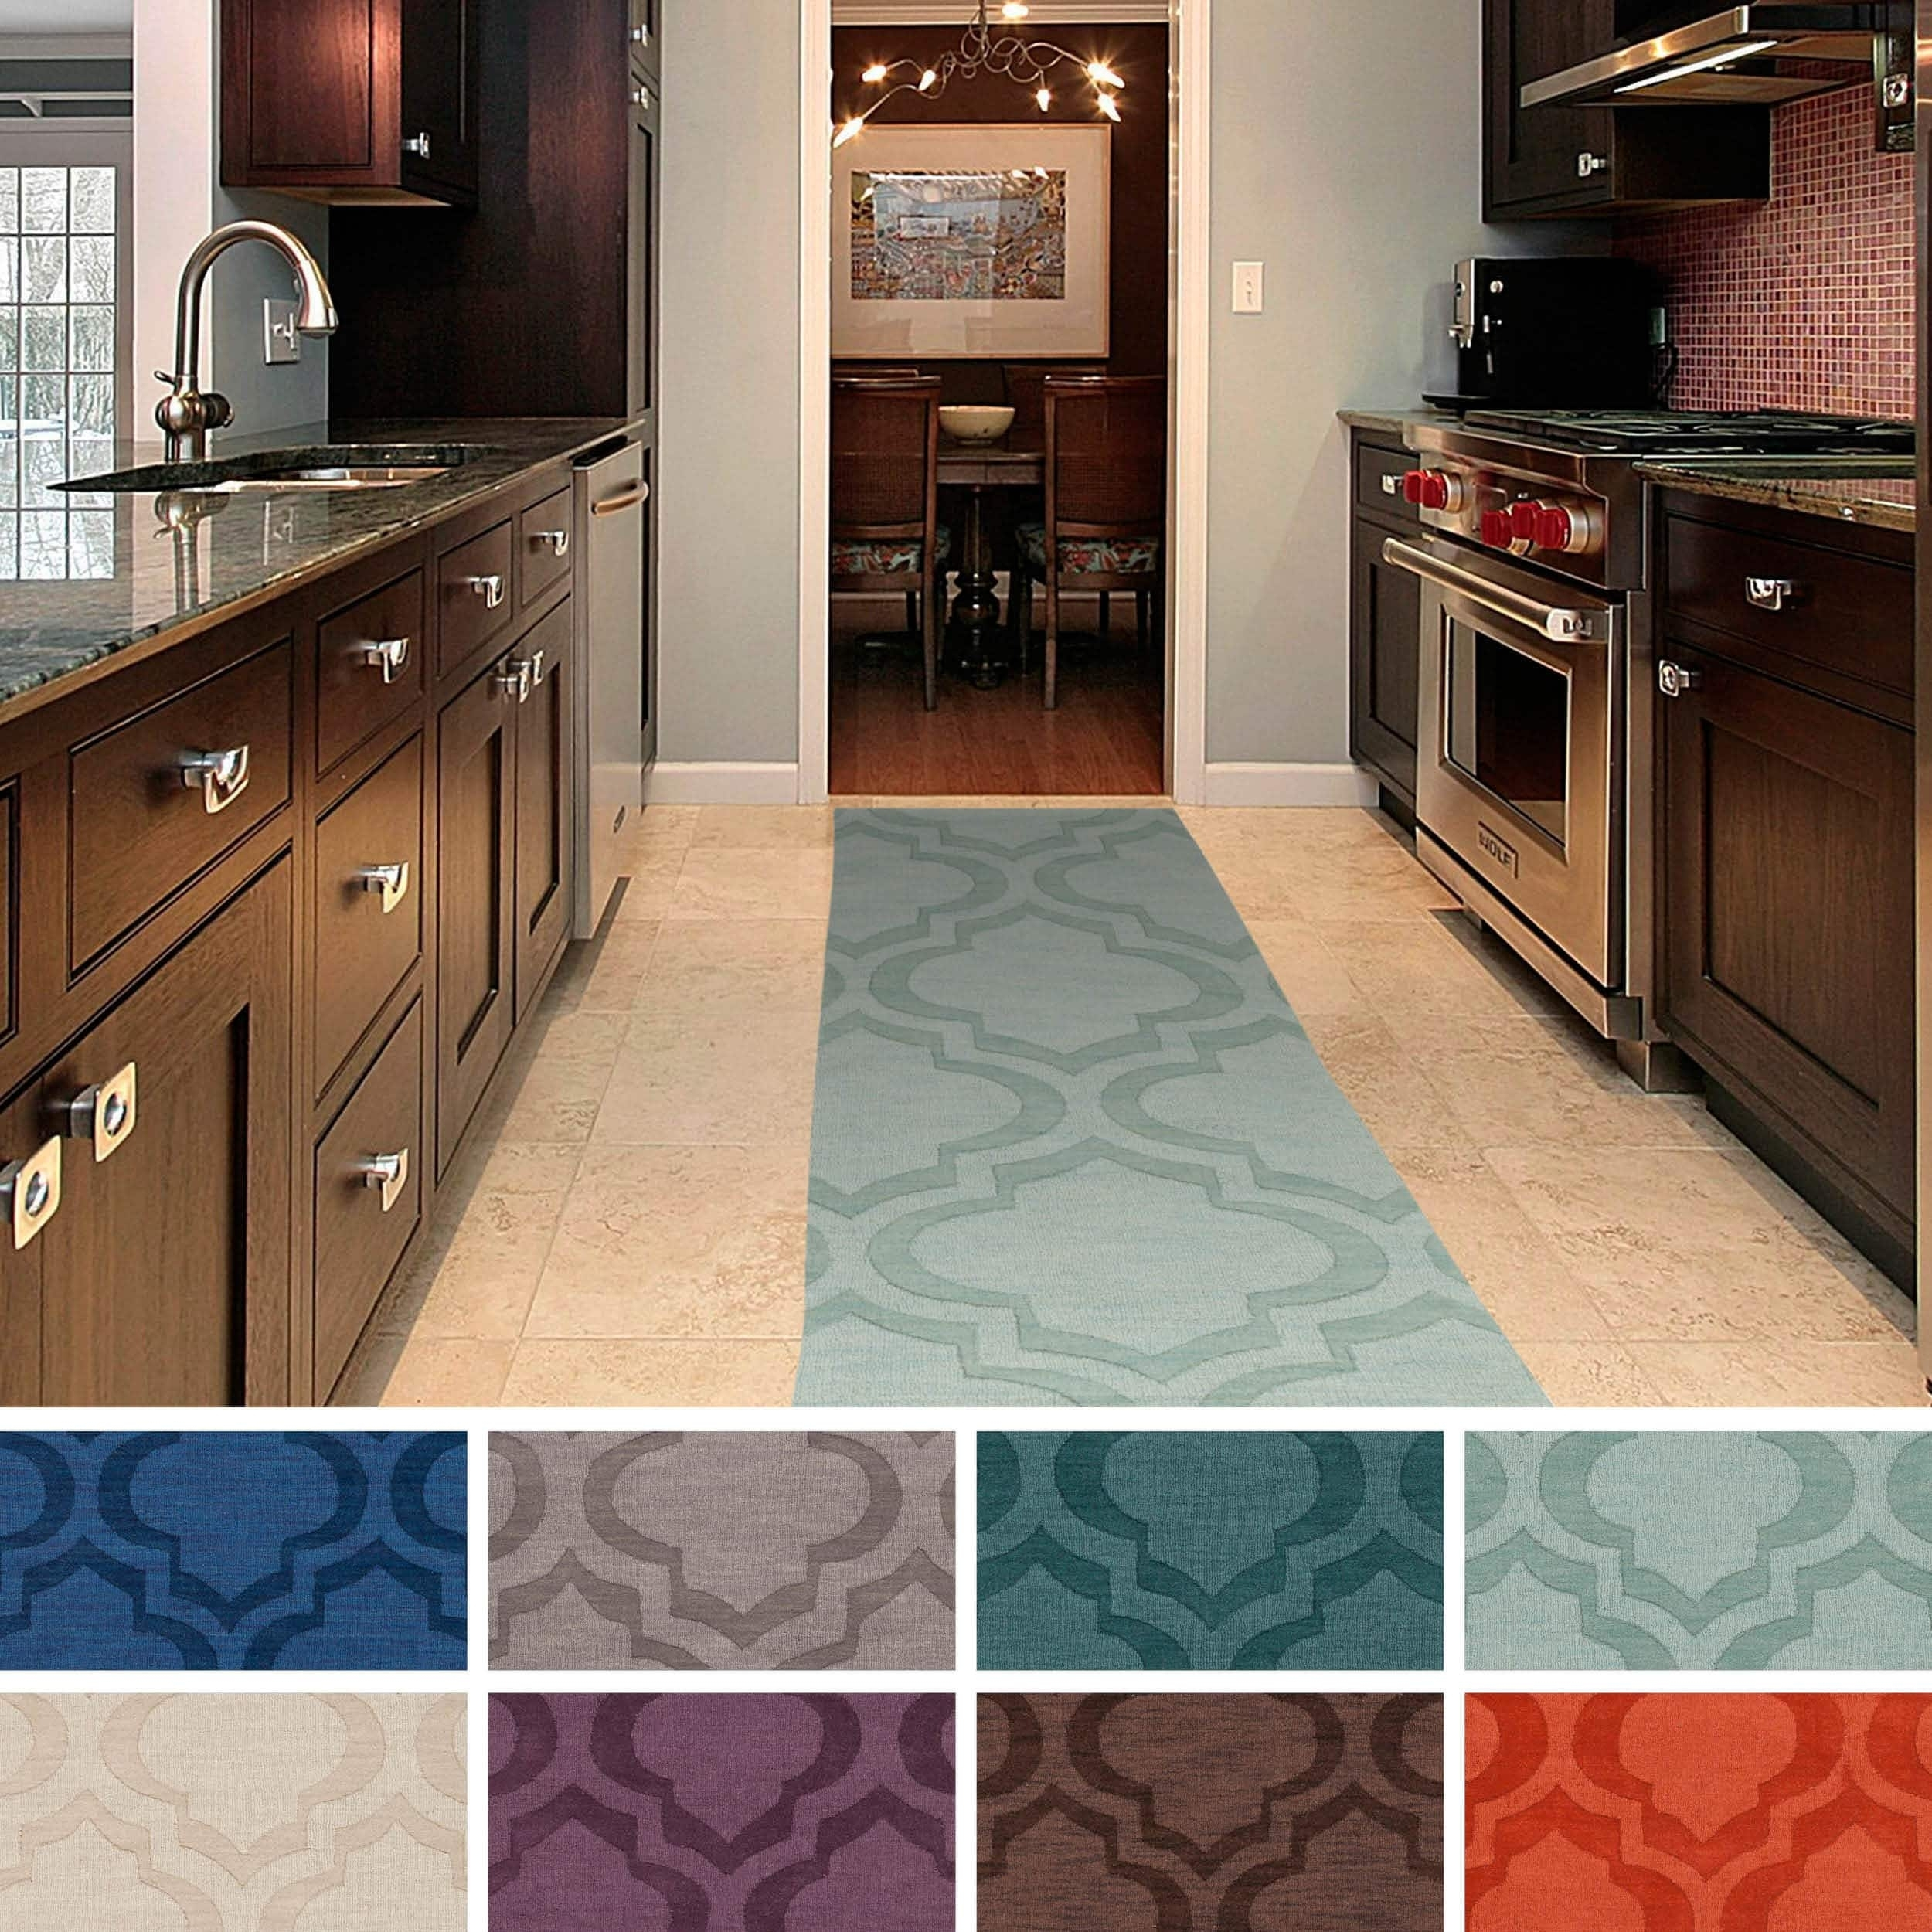 20 Best Of Hallway Carpet Runners By The Foot | Hallway Carpet Runners By The Foot